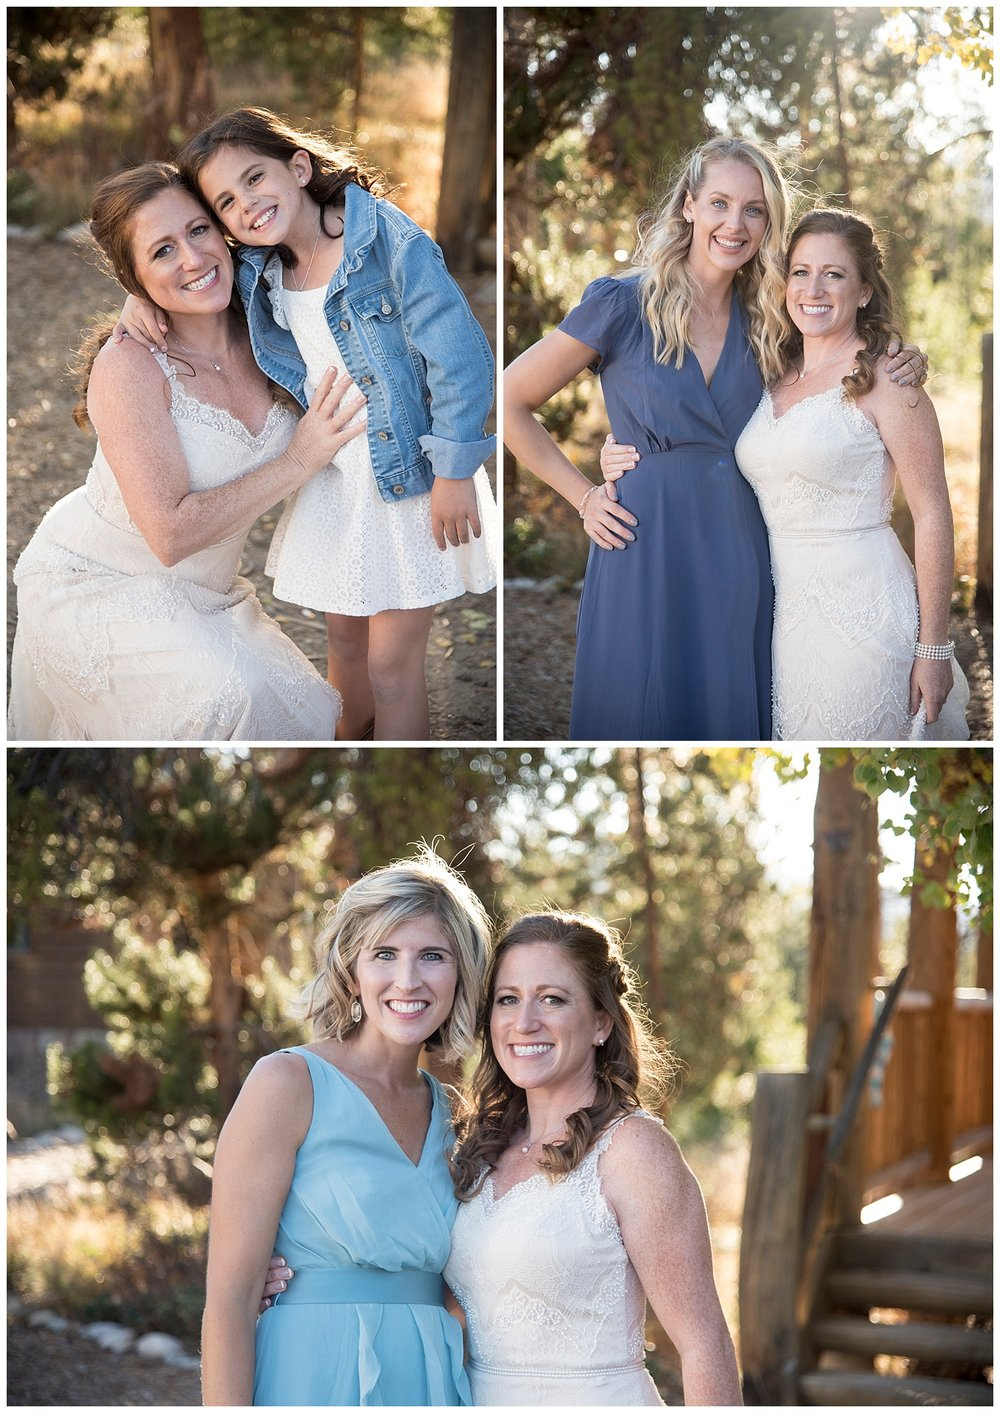 Family Photo Collage | Carolyn and Shawn's Wild Horse Inn Wedding at Devil's Thumb Ranch | Fraser Colorado Photography | Farm Wedding Photographer | Apollo Fields Wedding Photojournalism